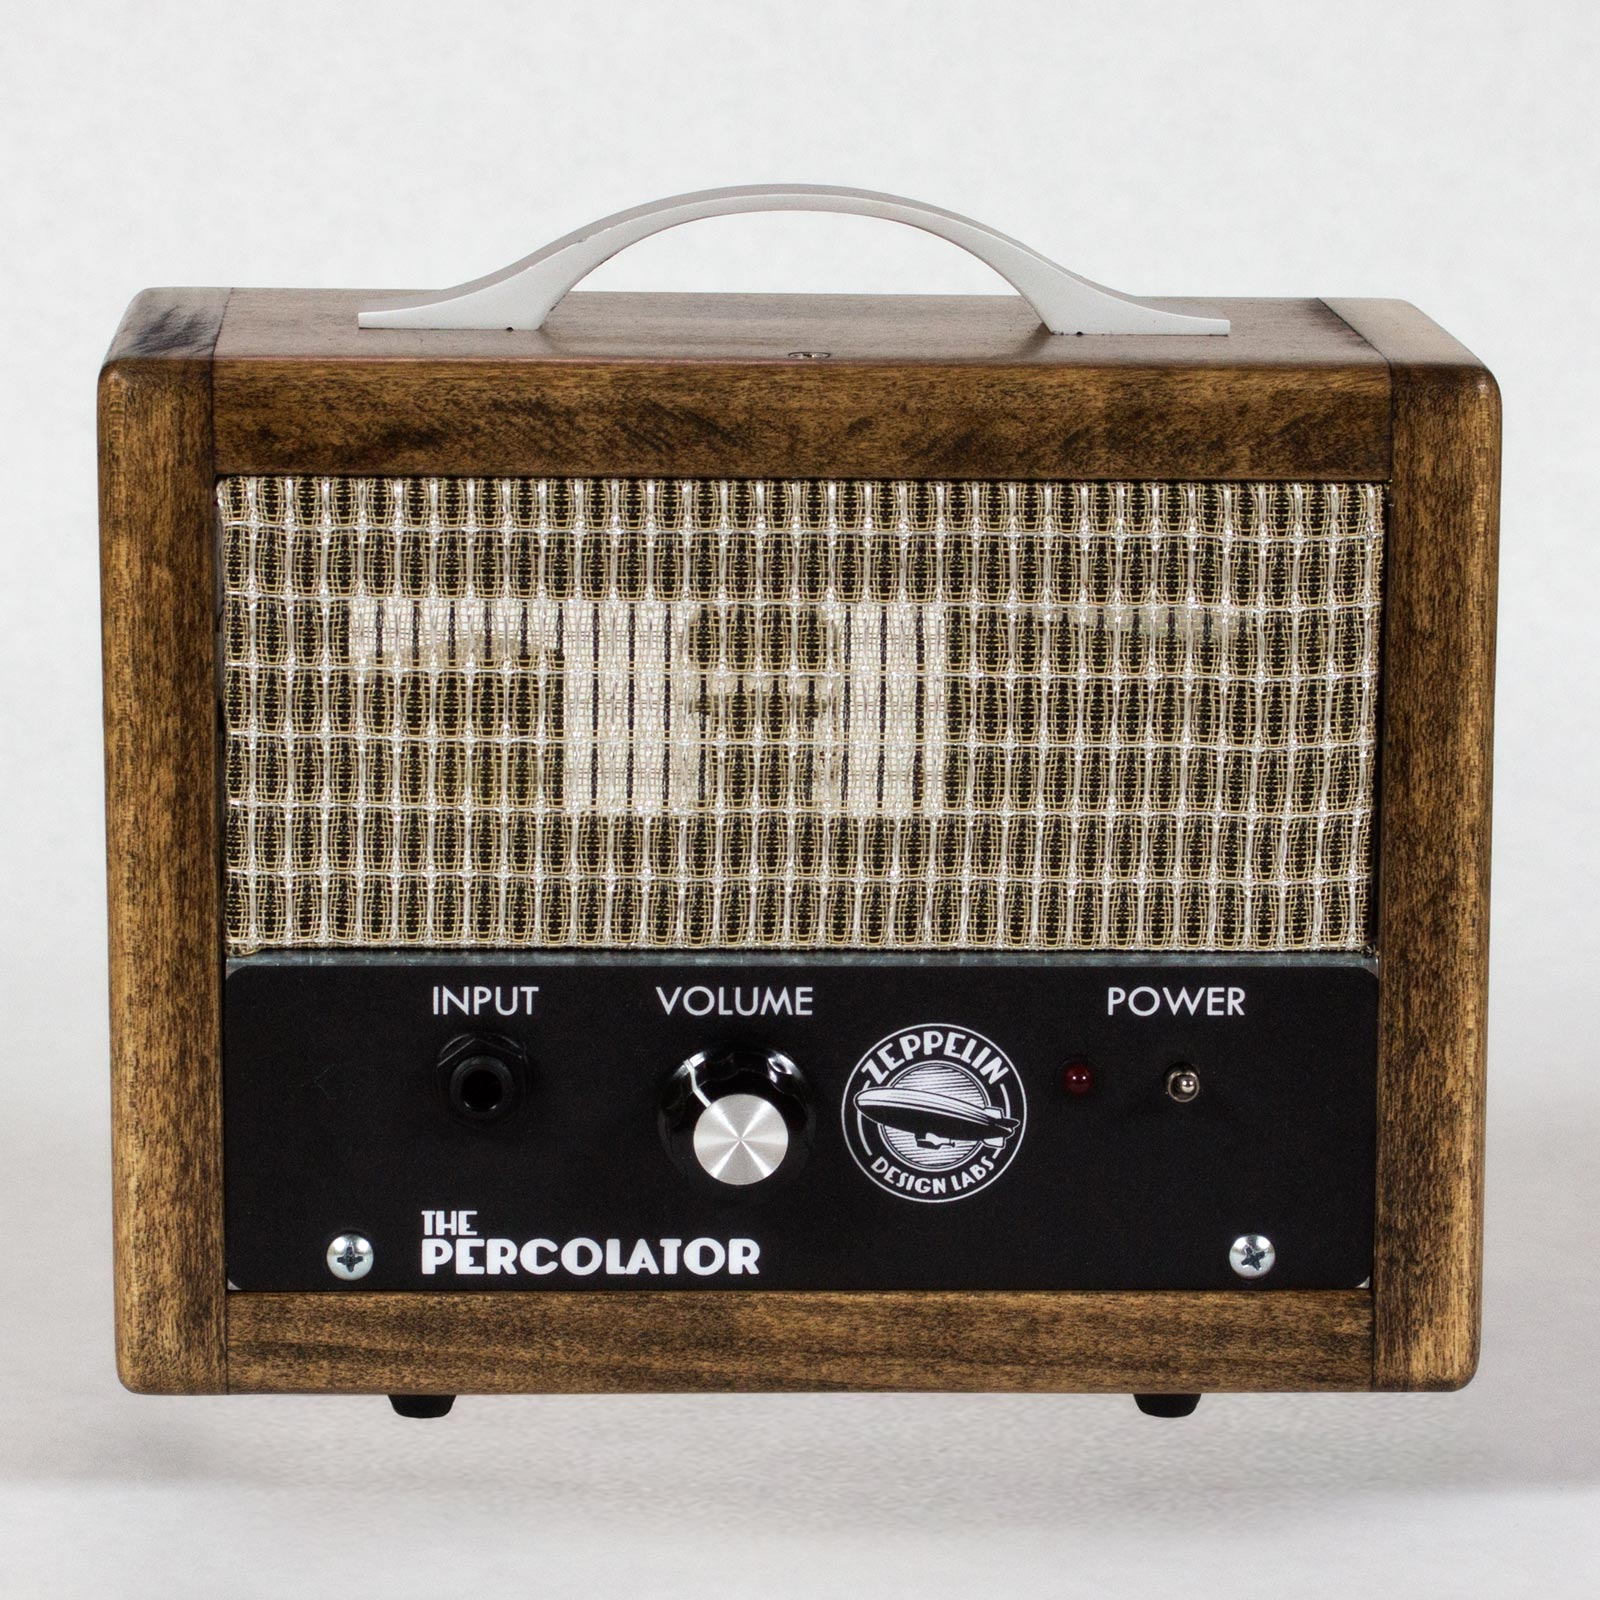 Percolator 2w tube guitar amp valve amp zeppelin design labs percolator 2w tube guitar amp valve amp solutioingenieria